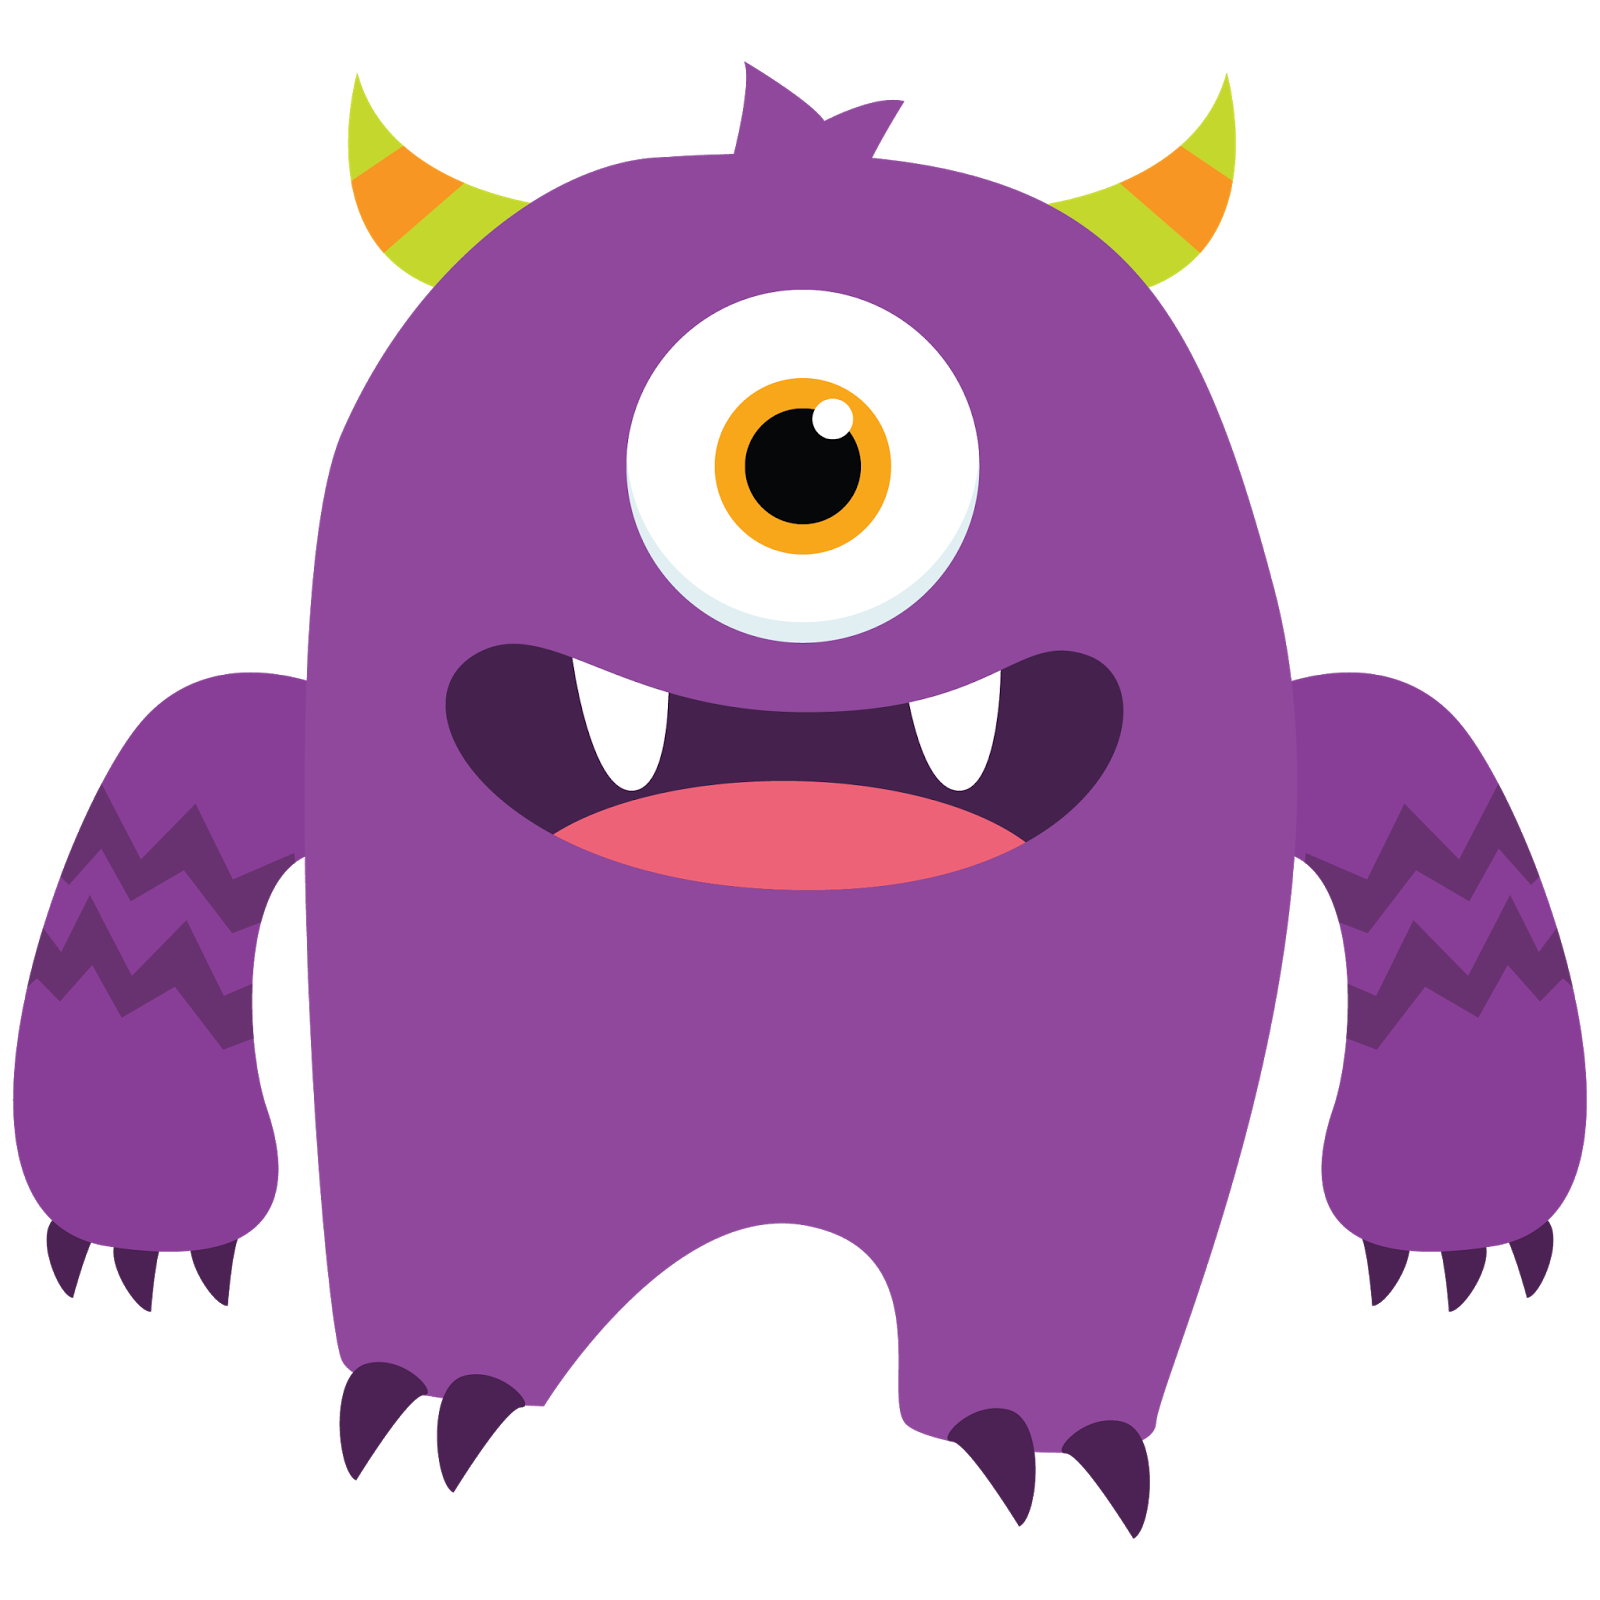 monster clipart free clipart images monster cute pinterest rh pinterest com monster clipart images monster clipart images